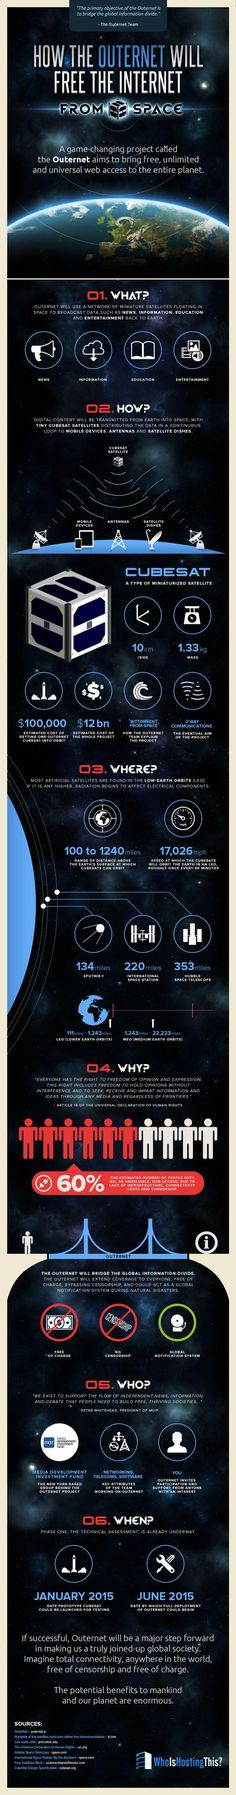 How The Outernet Will Free The Internet From Space - A game-changing project called the Outernet aims to bring free, unlimited and universal web access to the entire planet. | #Infographic [The Internet of the Future: http://futuristicnews.com/tag/internet/ Space Future: http://futuristicnews.com/category/future-space/]